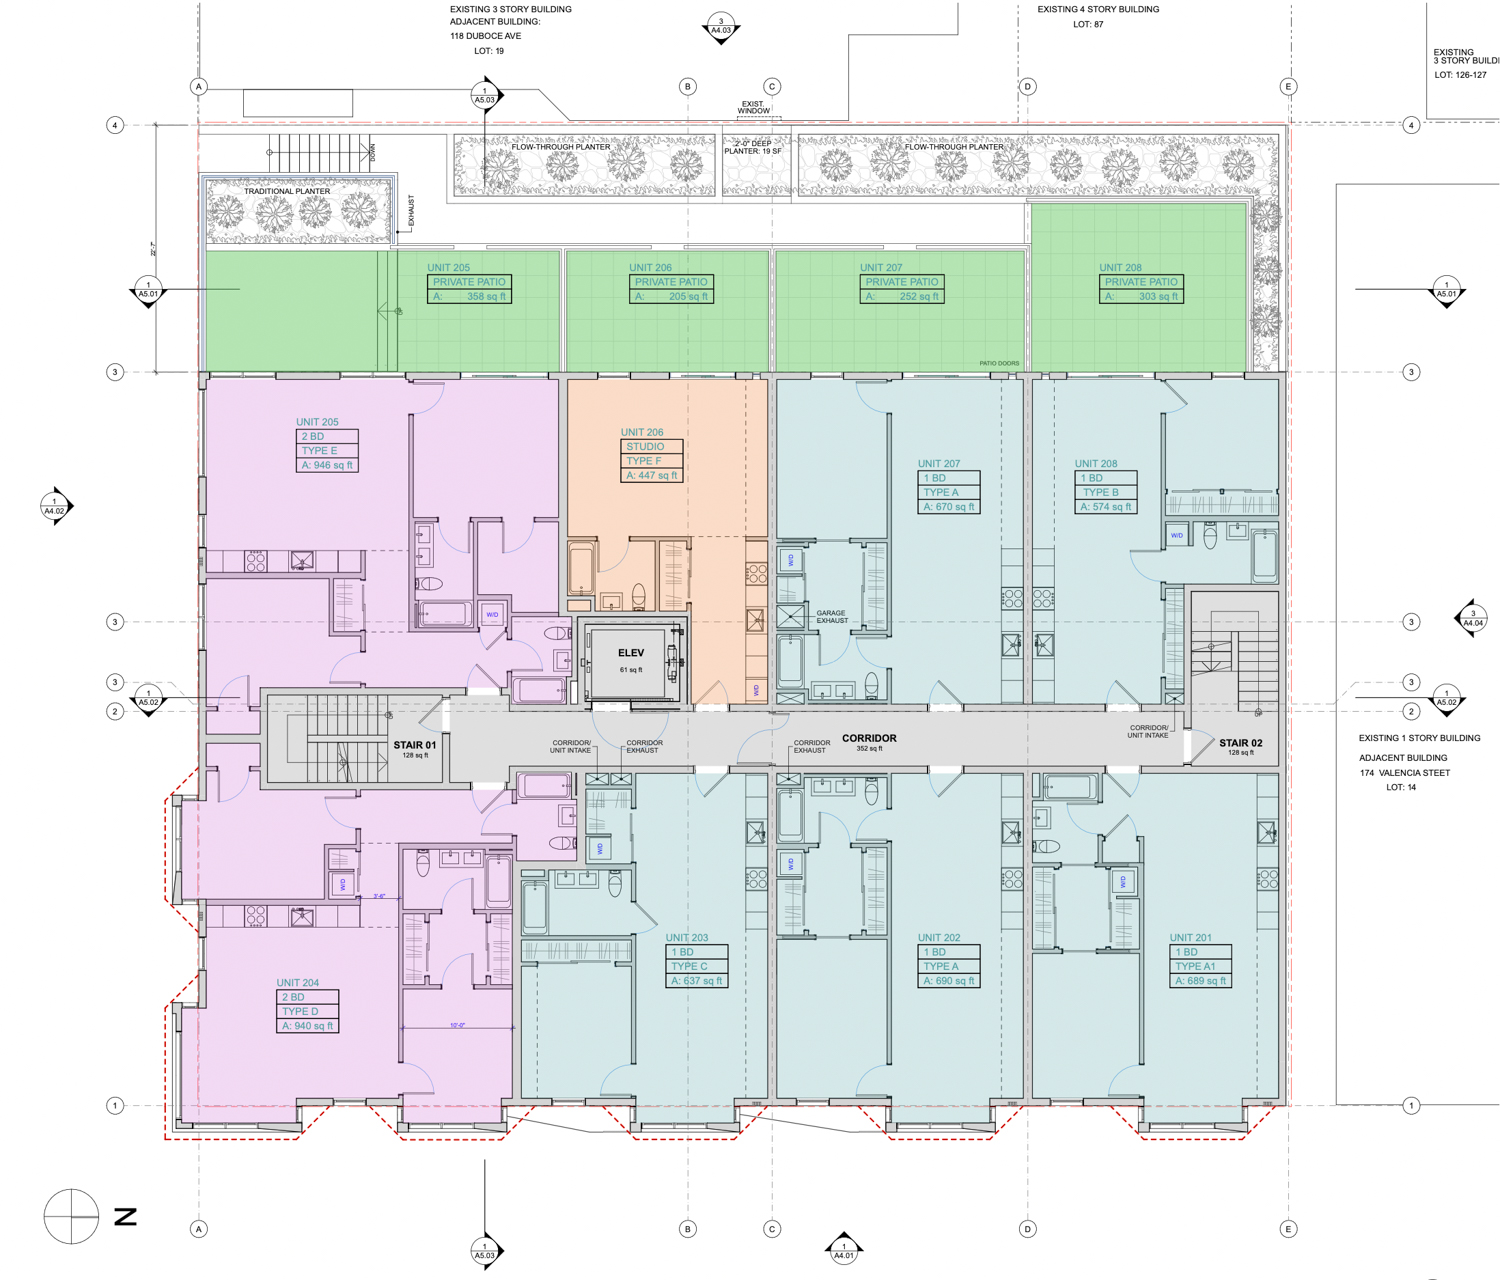 198 Valencia Street second-level floor plan, illustration by RG Architecture